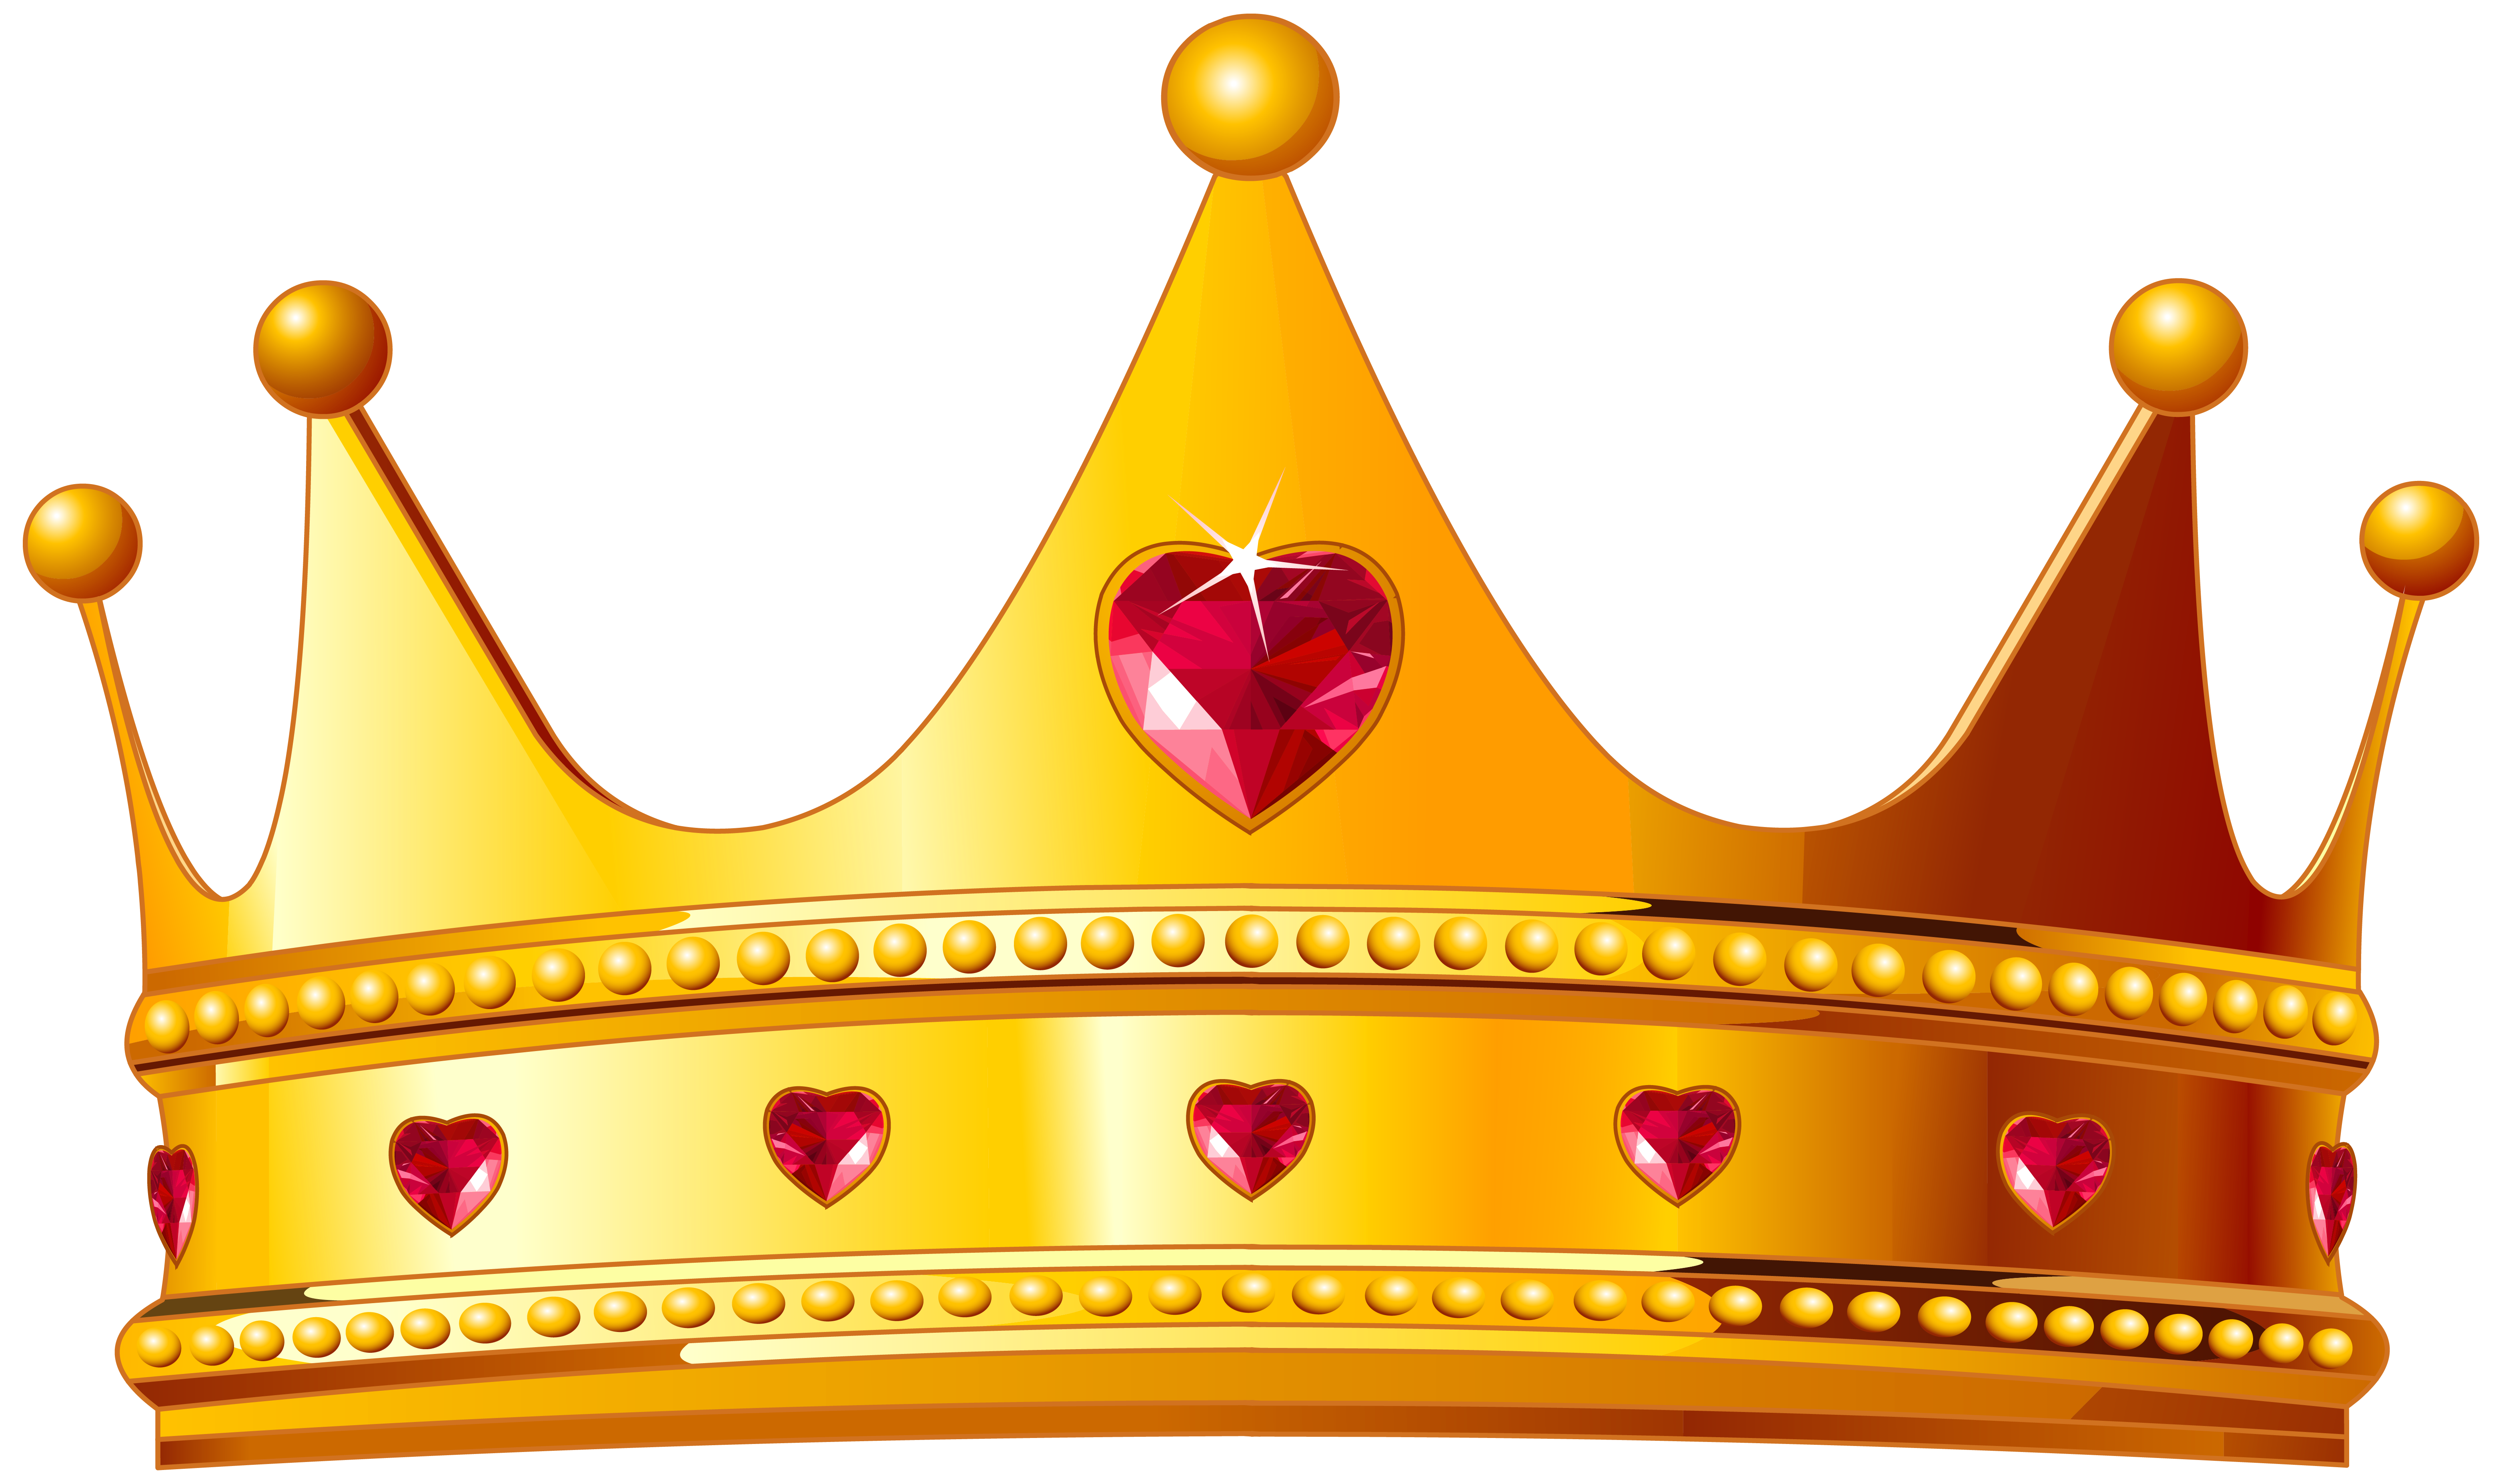 Golden Crown With Hearts Png Clipart Image Crown Png Crown Clip Art Kings Crown King crown free vector we have about (1,222 files) free vector in ai, eps, cdr, svg vector illustration graphic art design format. pinterest